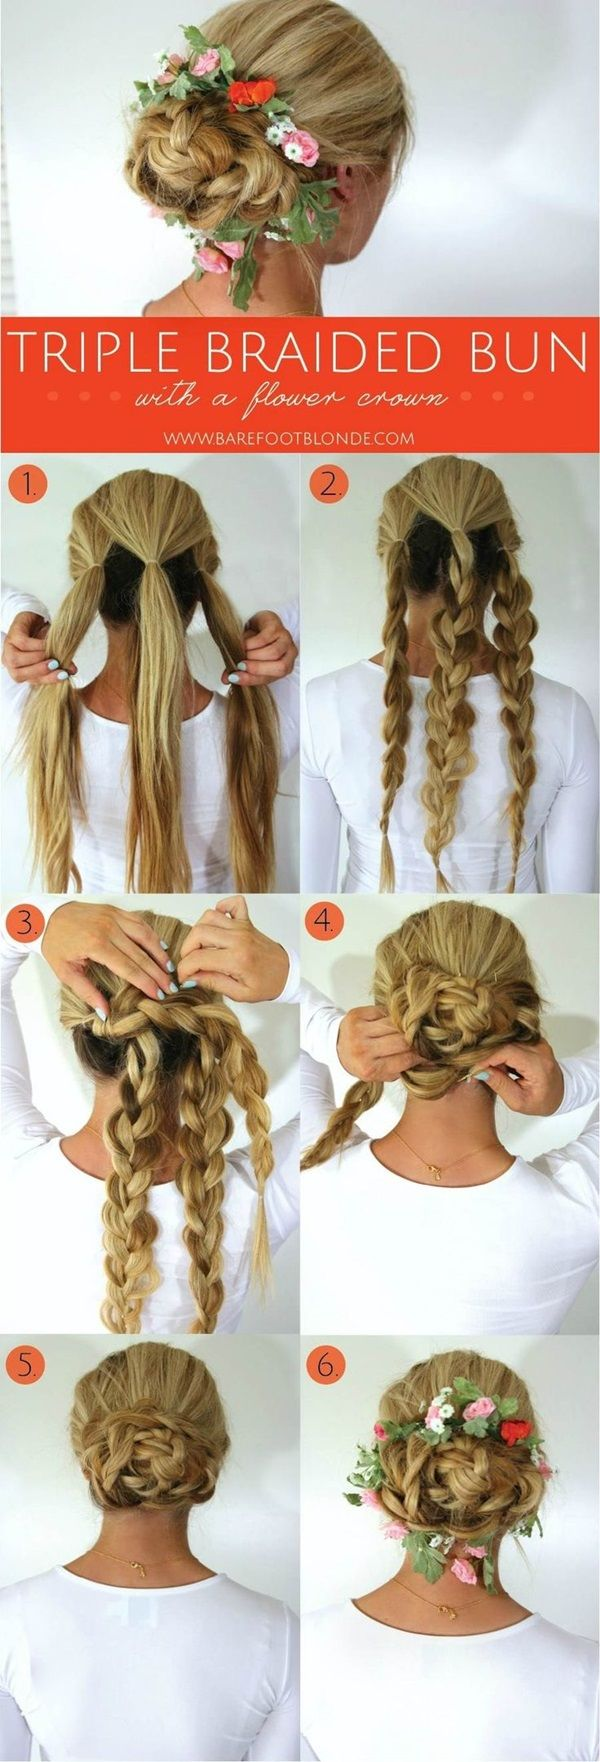 best nails and hair images on pinterest